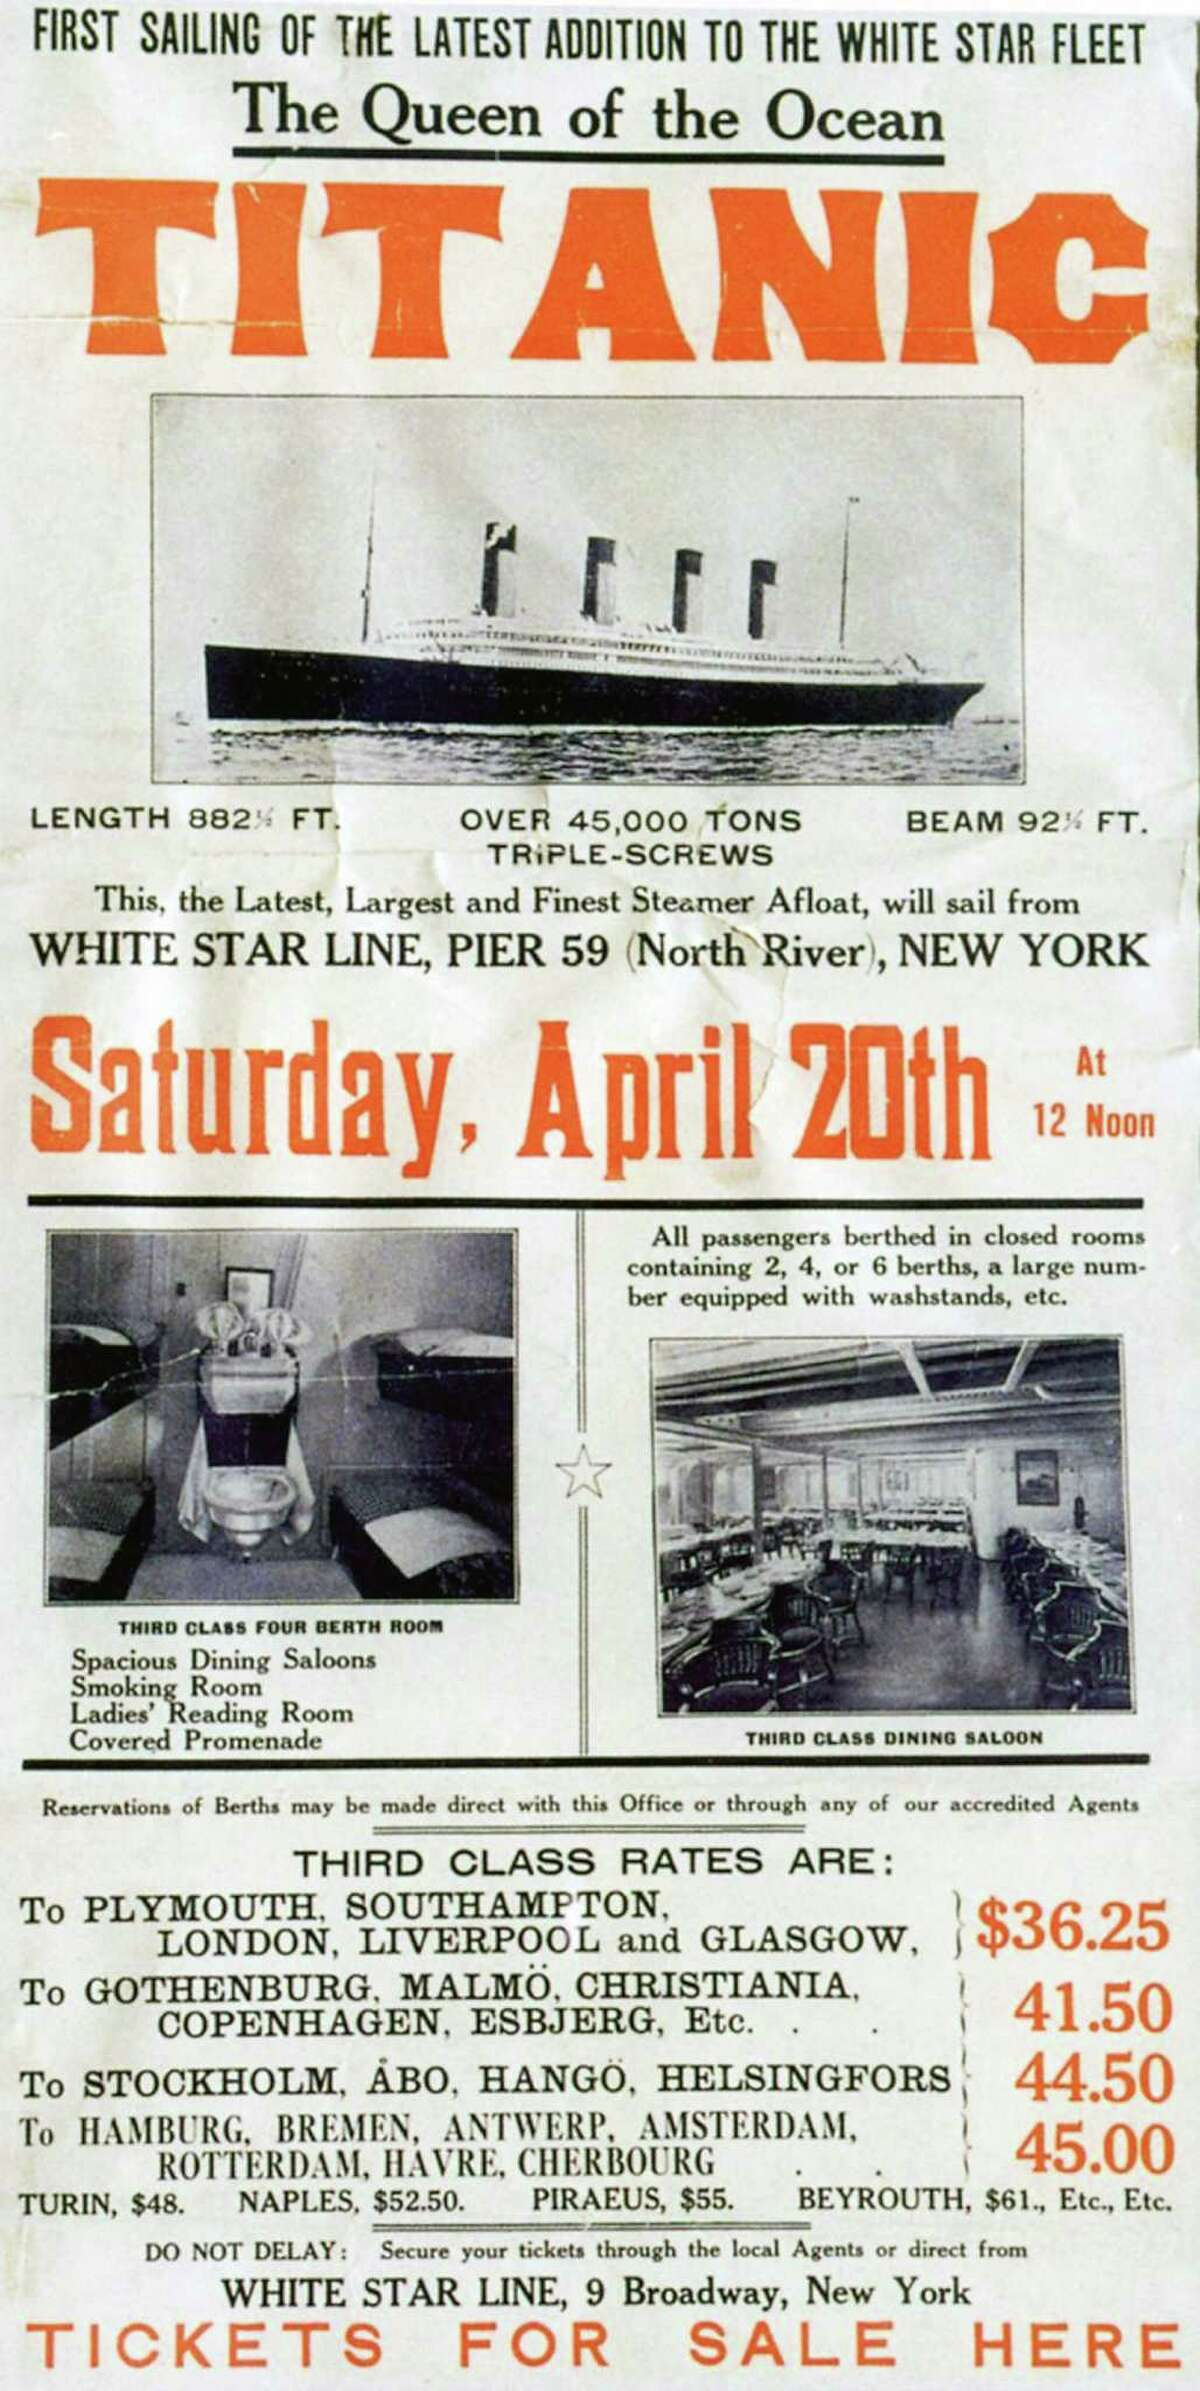 FILE -- A poster prepared by the White Star Line's New York office to promote the RMS Titanic's return trip from New York, scheduled for April 20, 1912. The largest ship afloat at the time, the Titanic sank in the north Atlantic Ocean on April 15, 1912, after colliding with an iceberg during her maiden voyage from Southampton to New York City. (The New York Times)